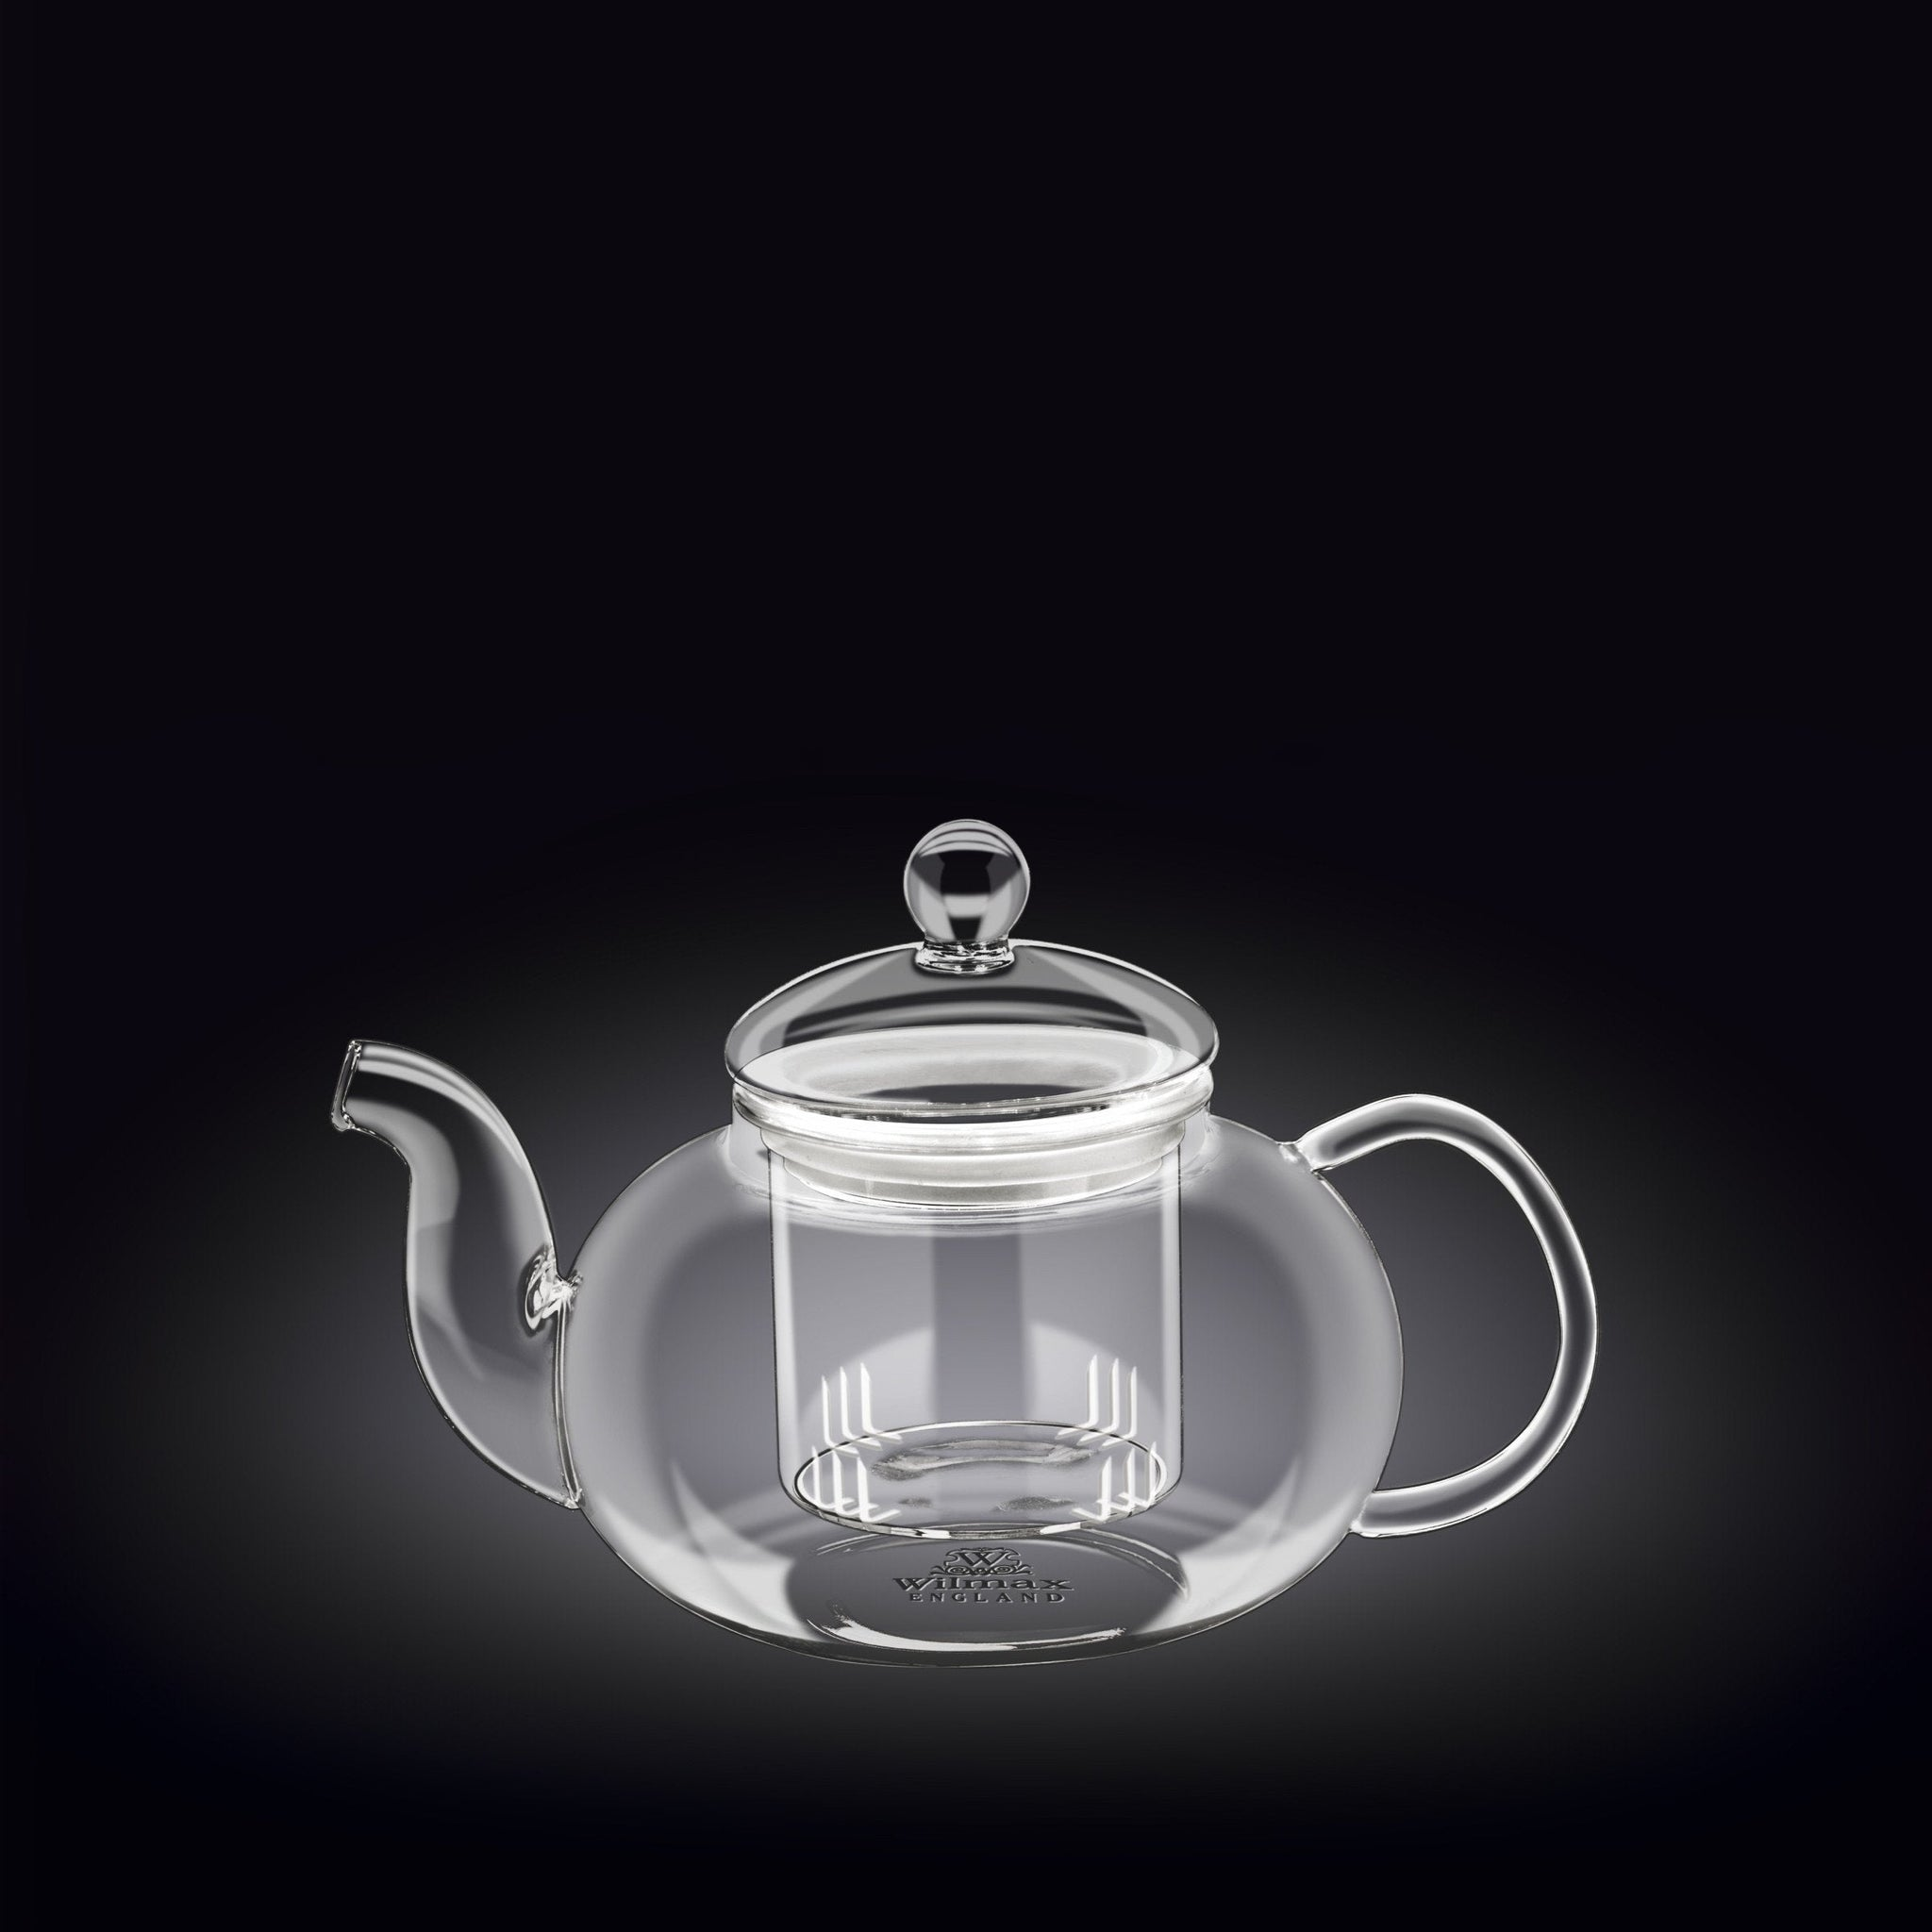 THERMO GLASS TEA POT 20 FL OZ | 620 ML WL-888812/A